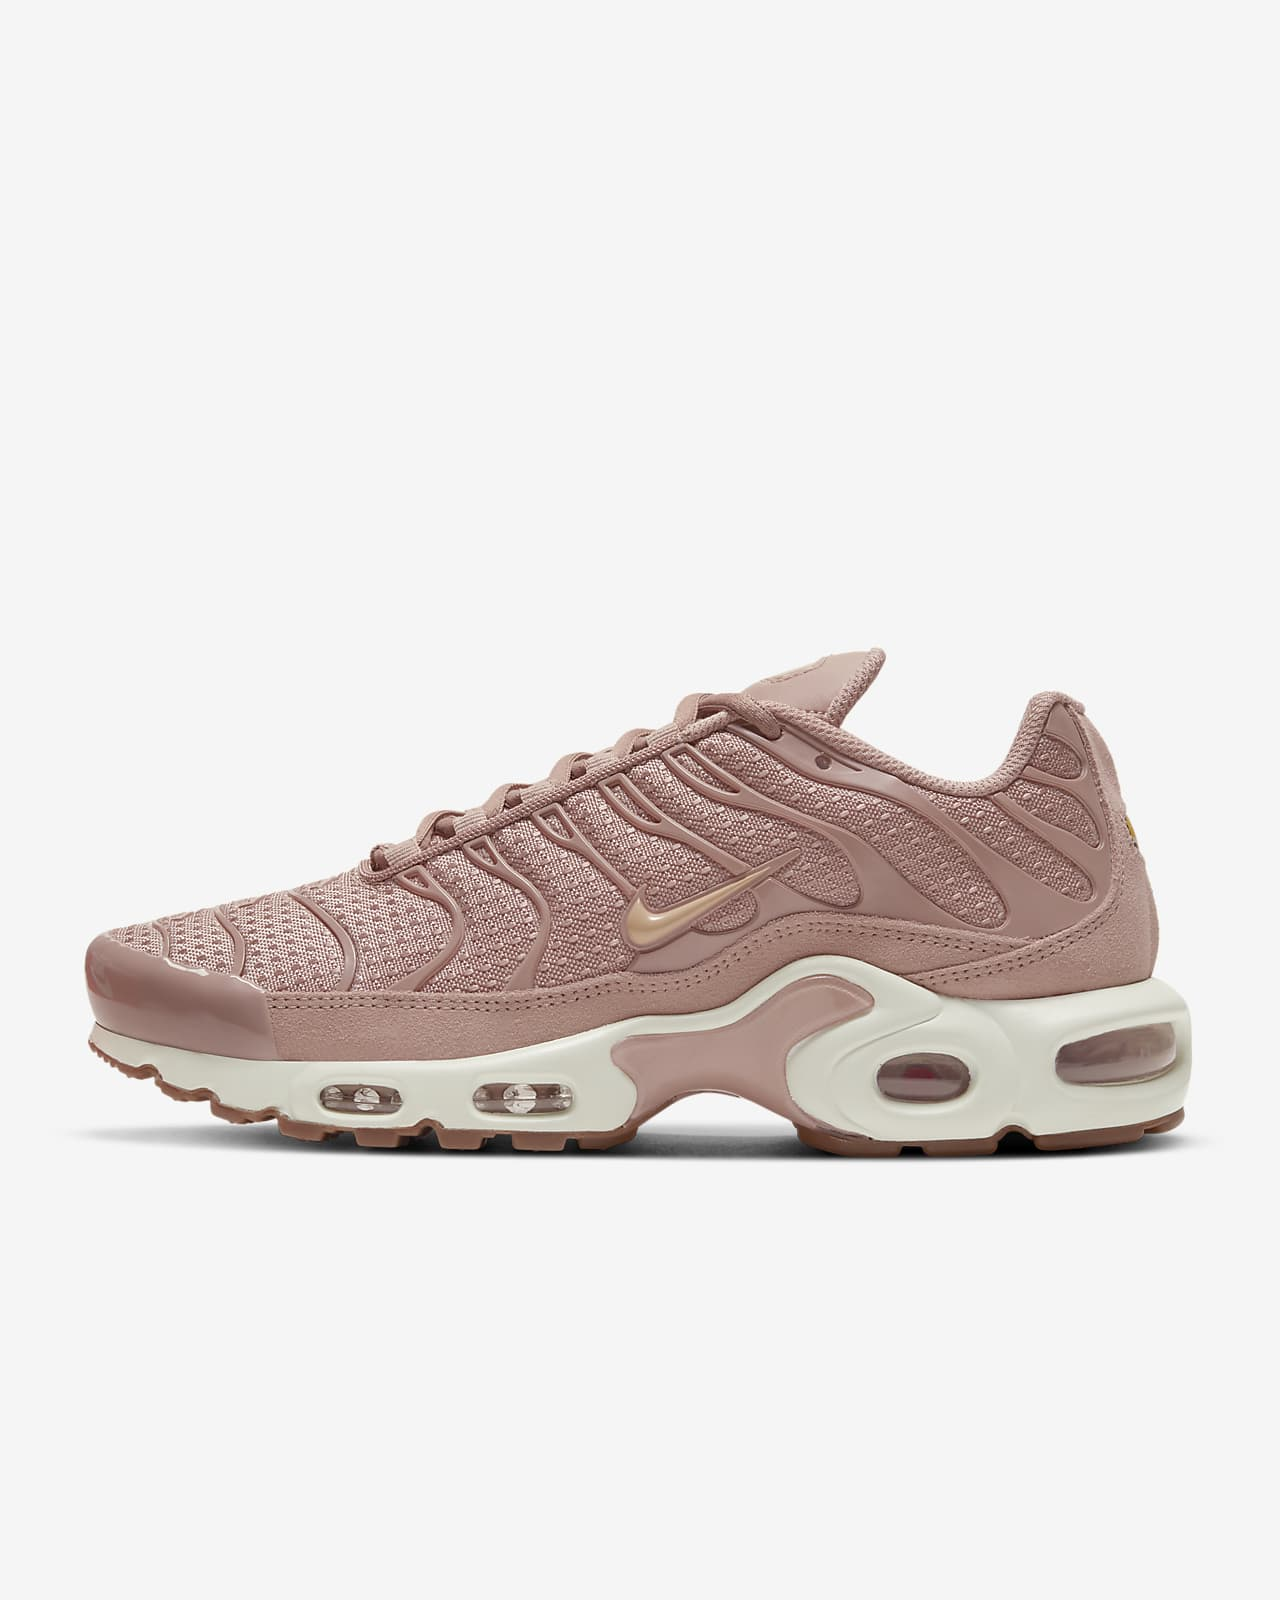 Nike Air Max Plus Shoe